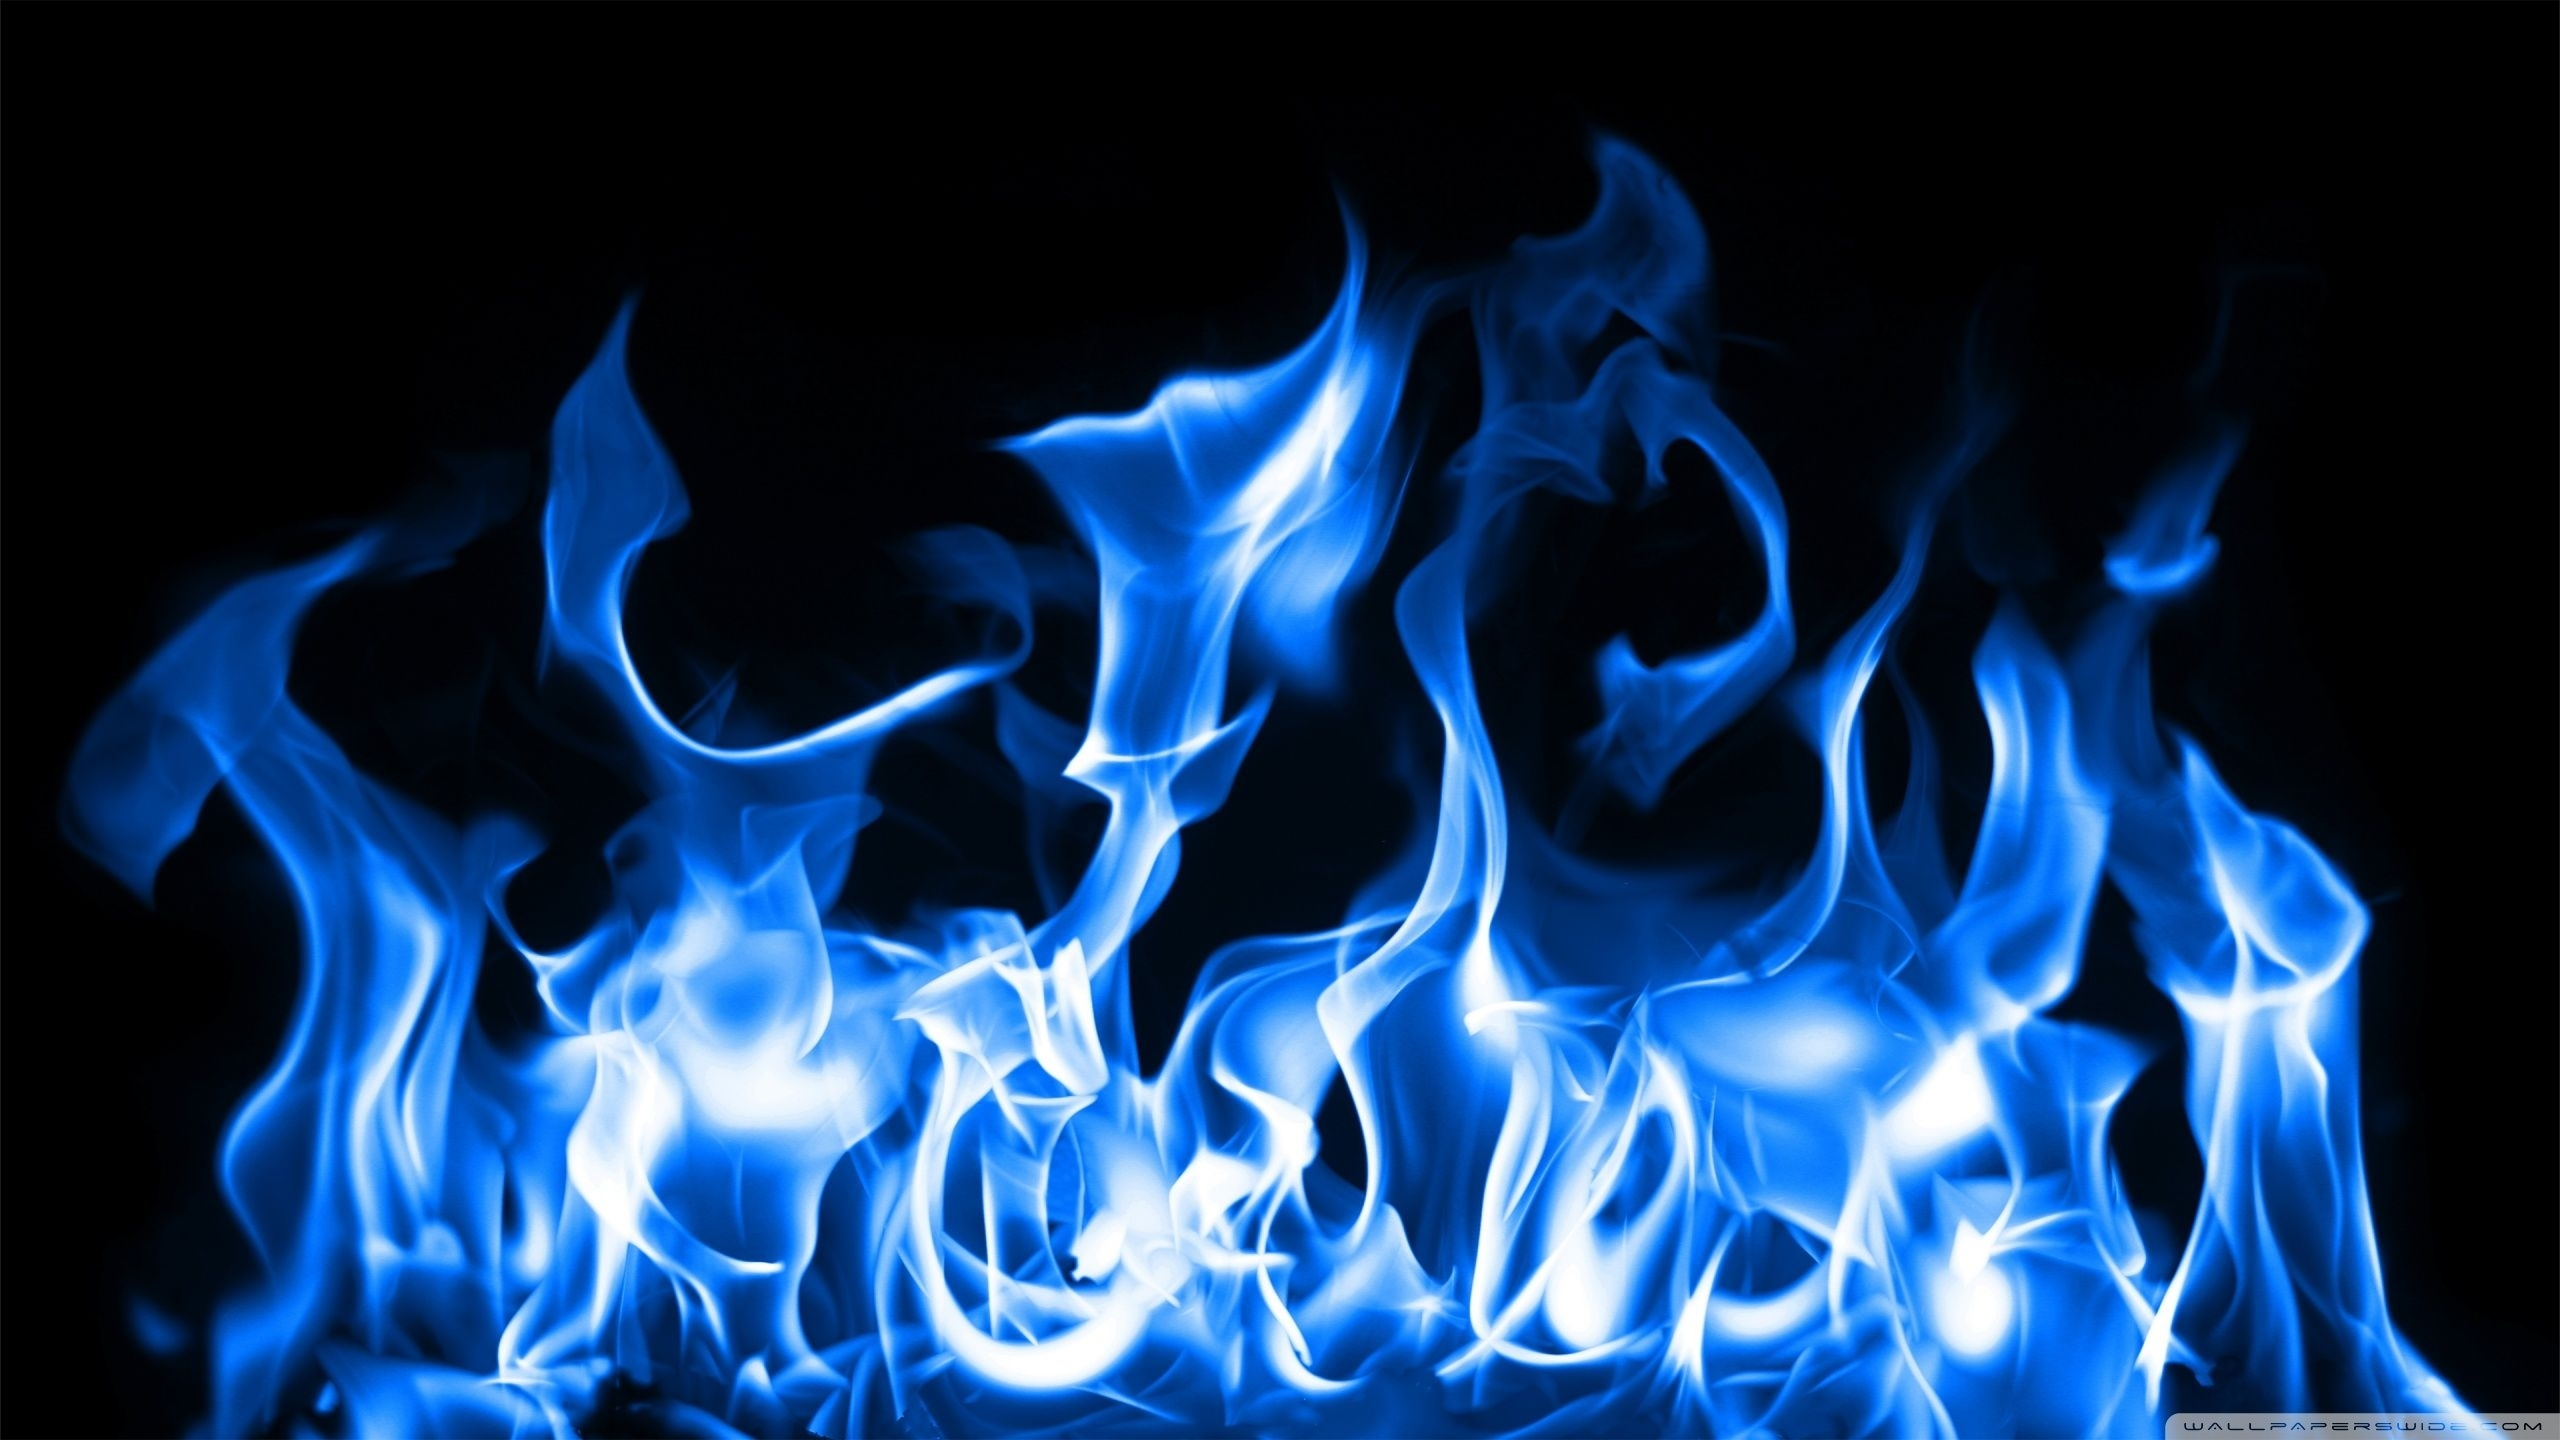 abstract hd wallpaper blue fire | figure in fire | pinterest | hd